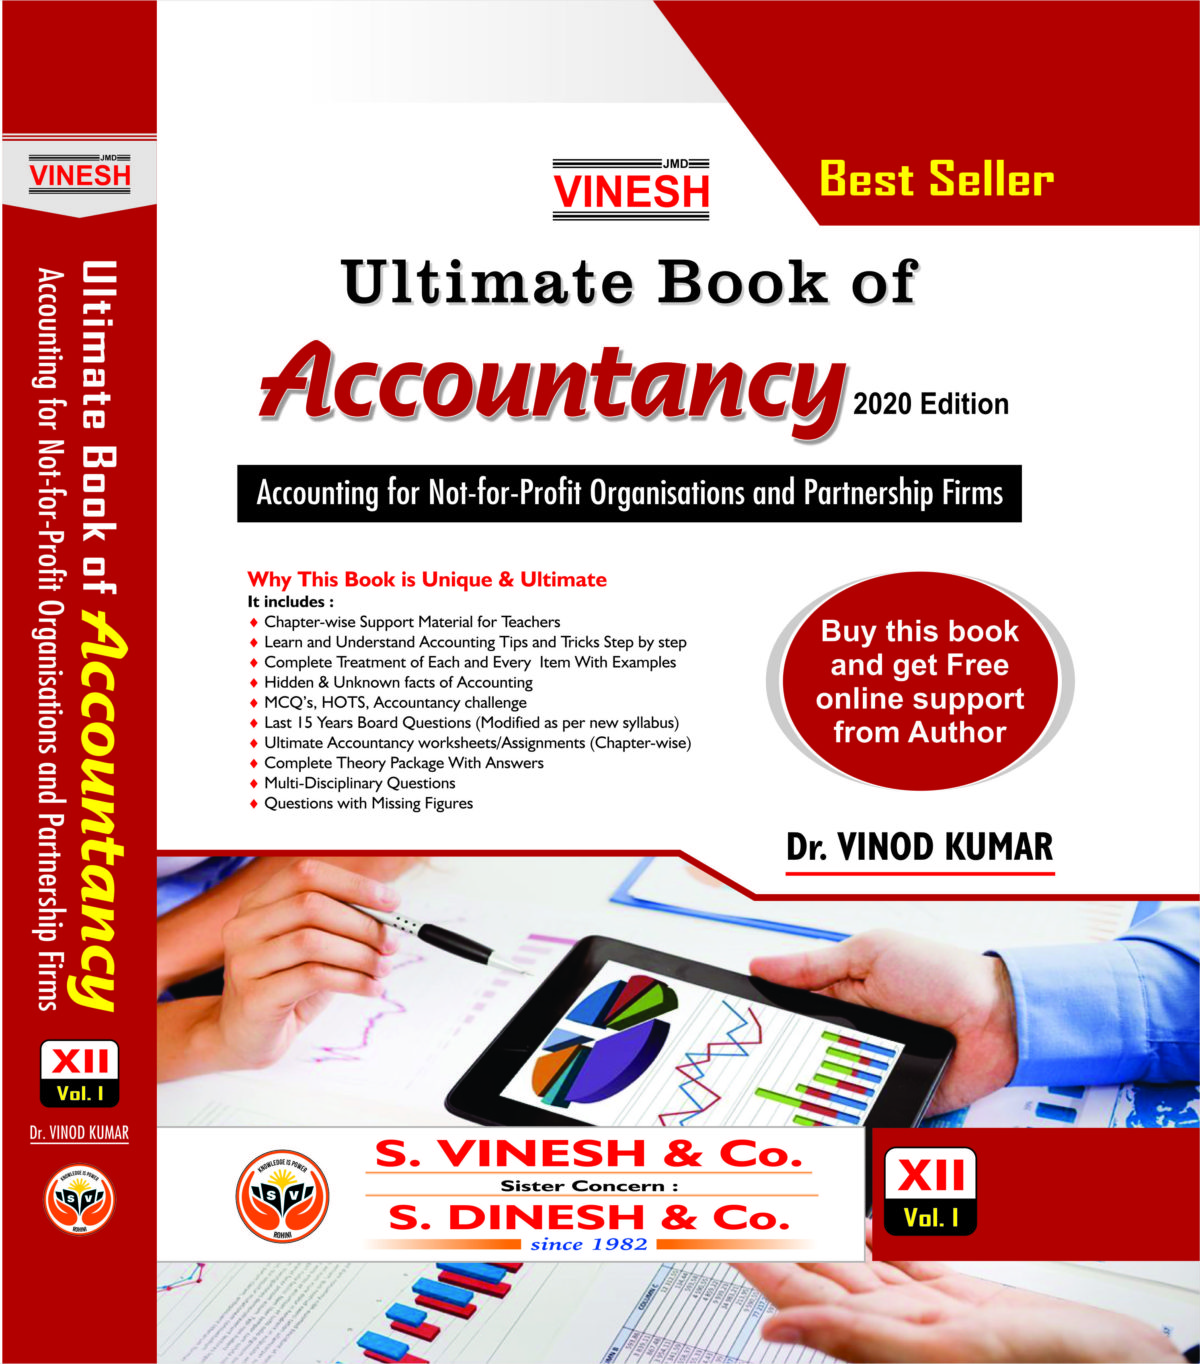 Vinesh ultimate book of Accountancy for companions class XII cbse vol. I